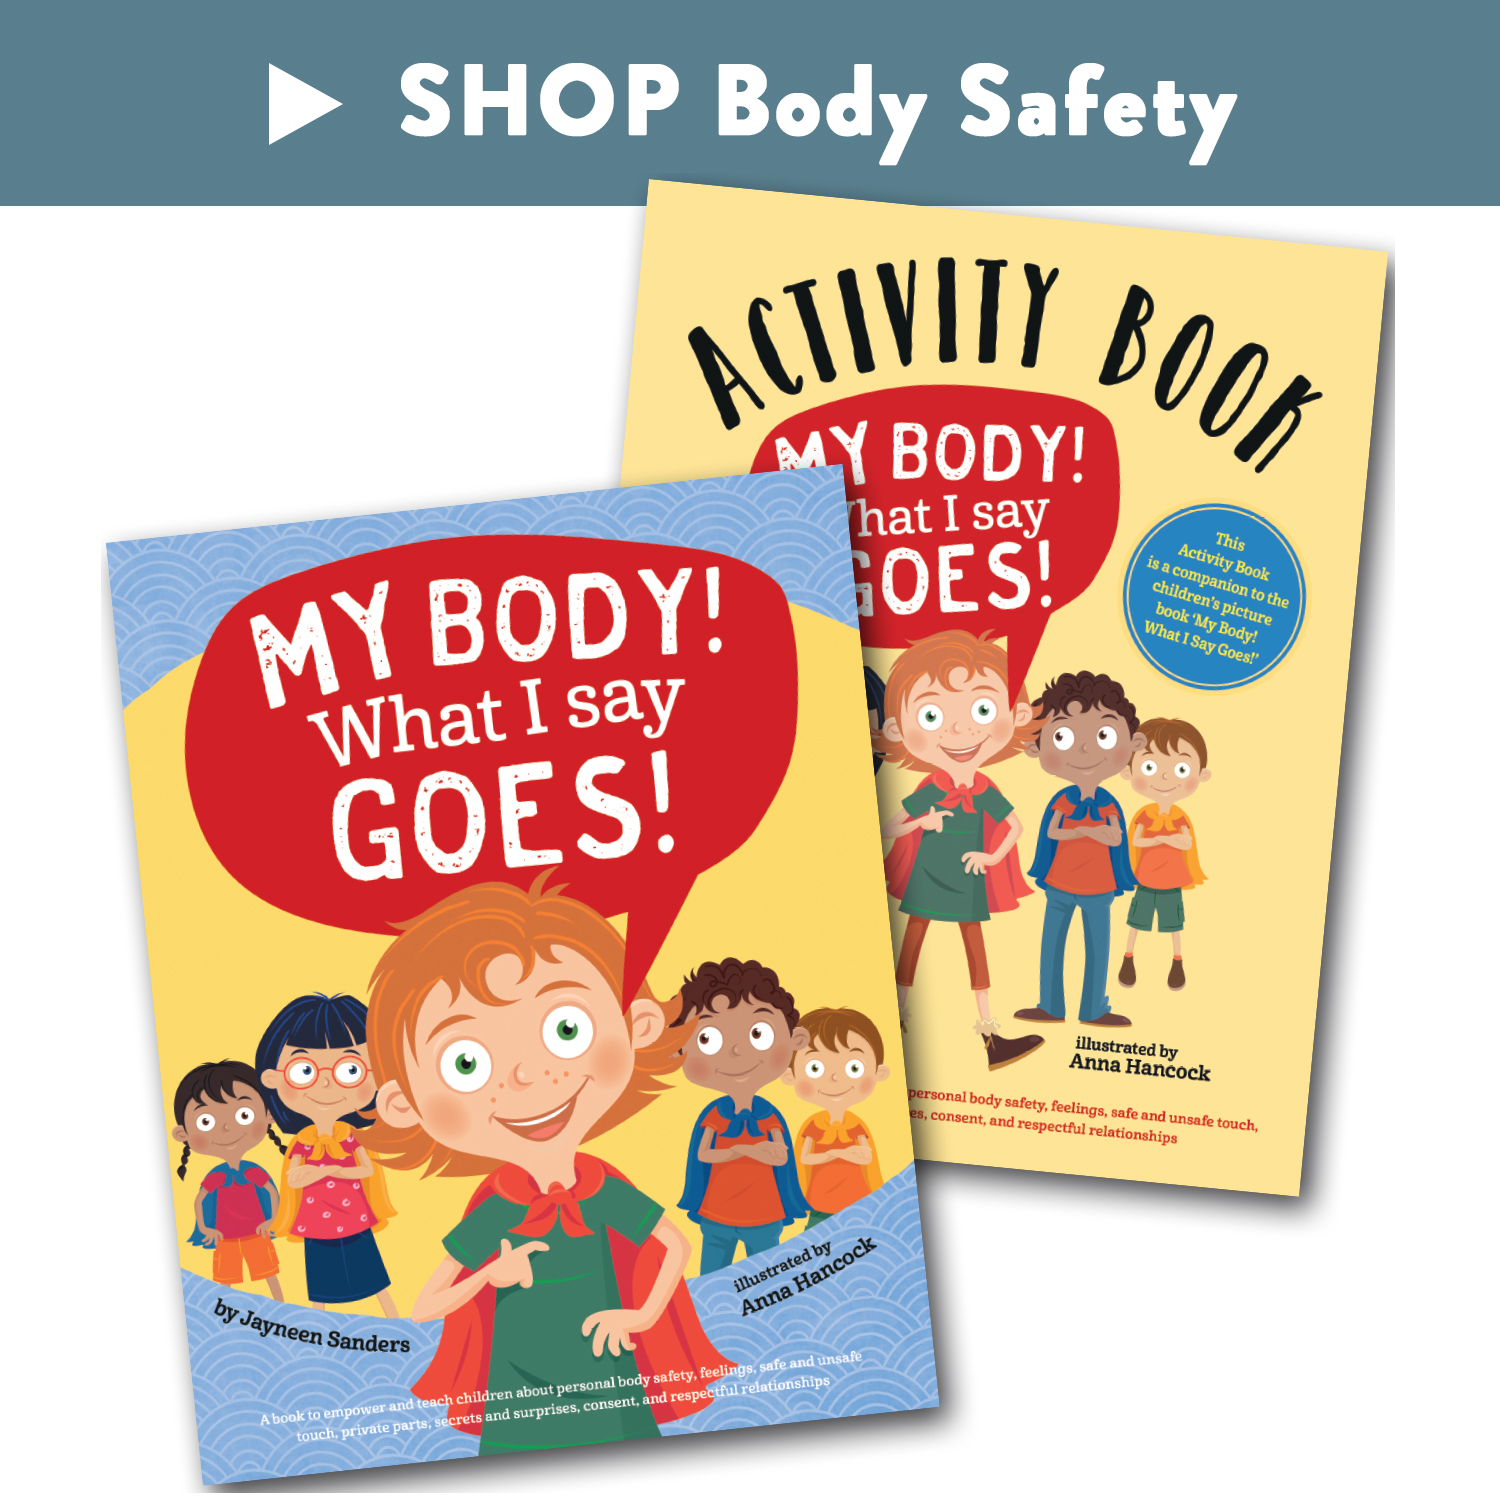 E2E_shop_BodySafety_8-MBAB.jpg